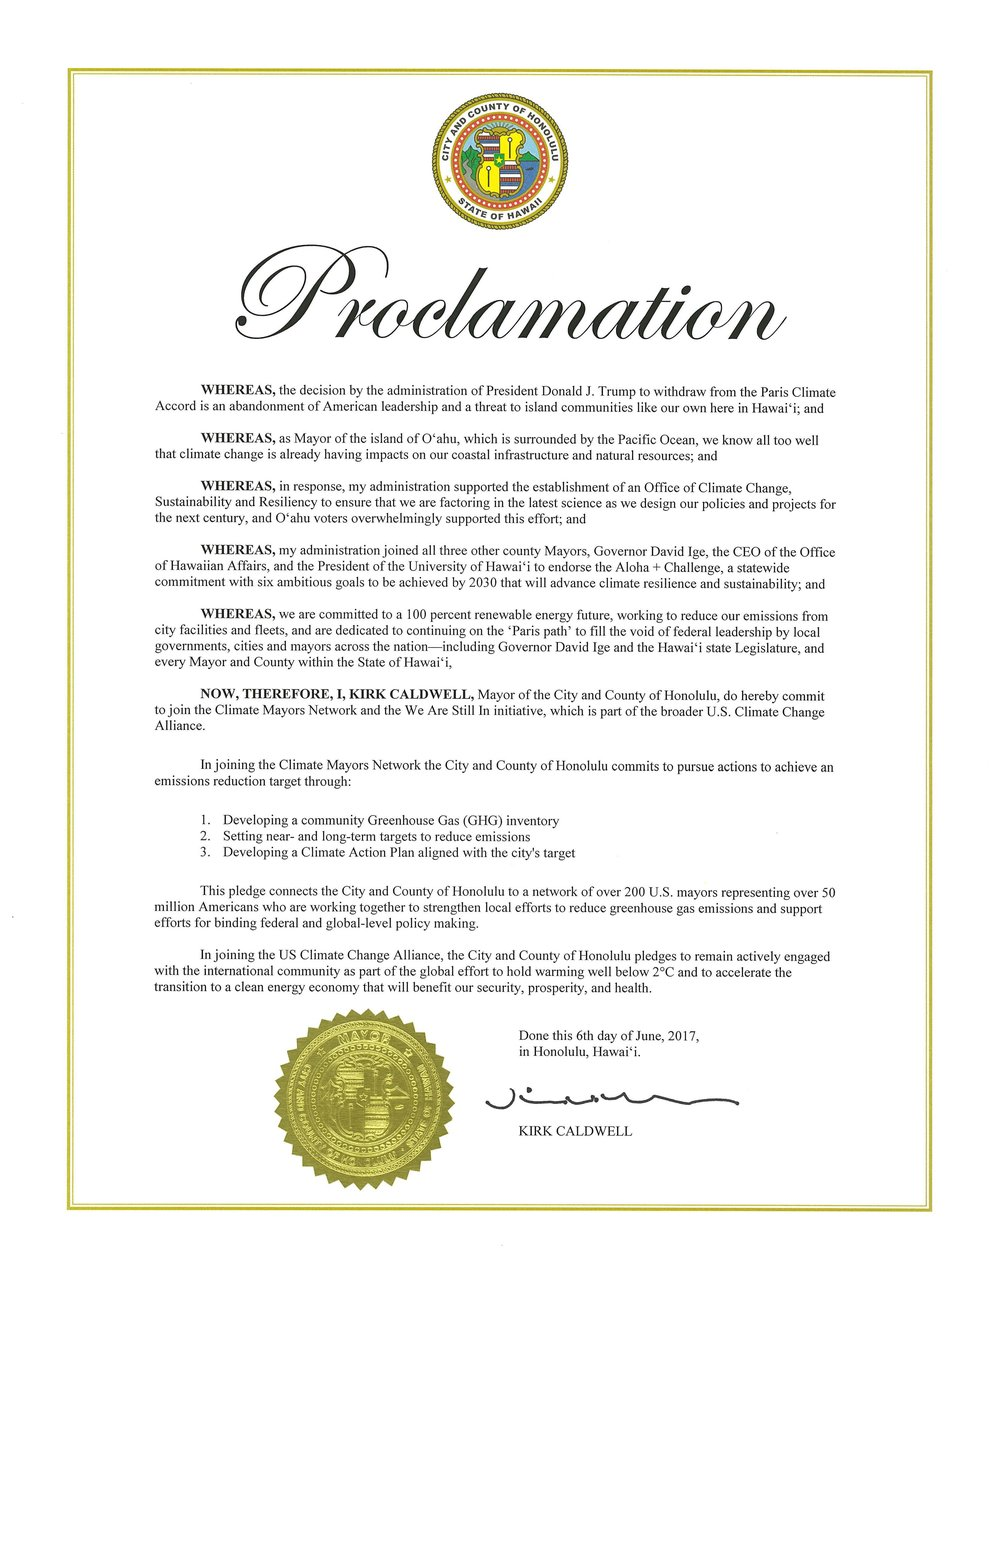 Mayor's Paris Accord Proclamation June 2017.jpg